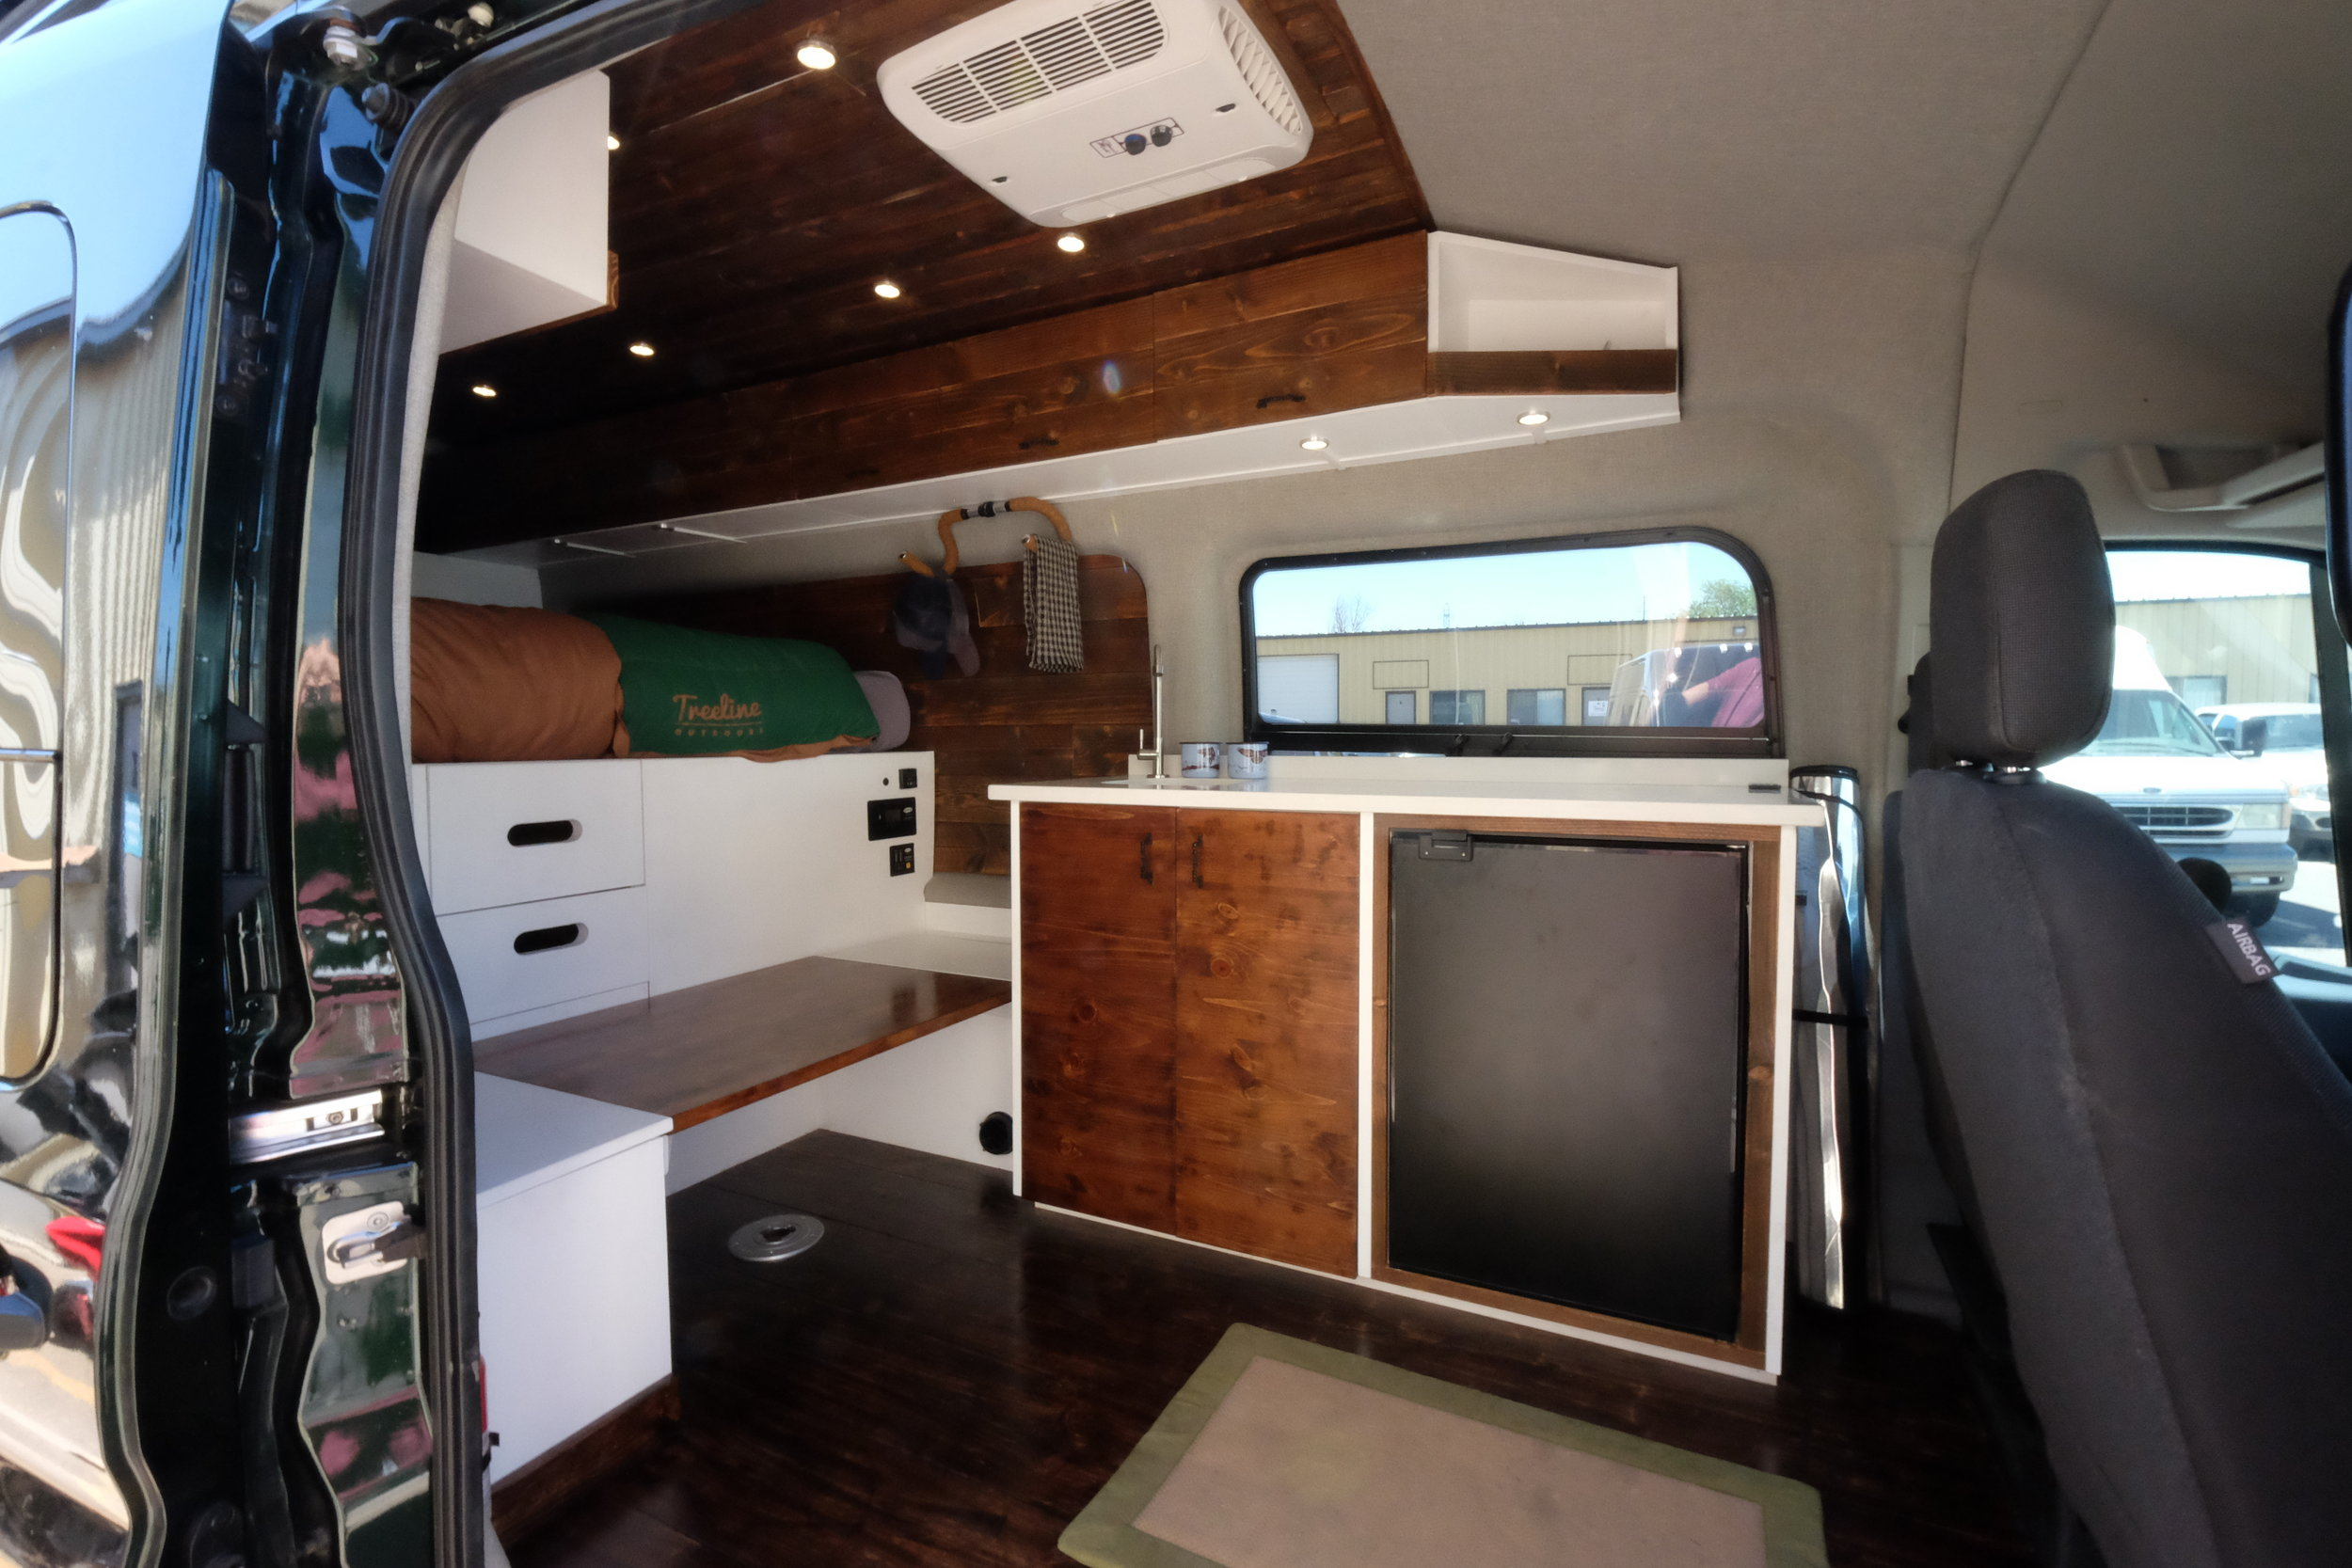 A Coleman Mach 8 AC is run off of a shore power plug and keeps Dan's van and dog cool on hot days. A 4 cu. ft. Truckfridge keeps the after-run beer cold, and the bench doubles as a table for two using a removable pedestal mount.